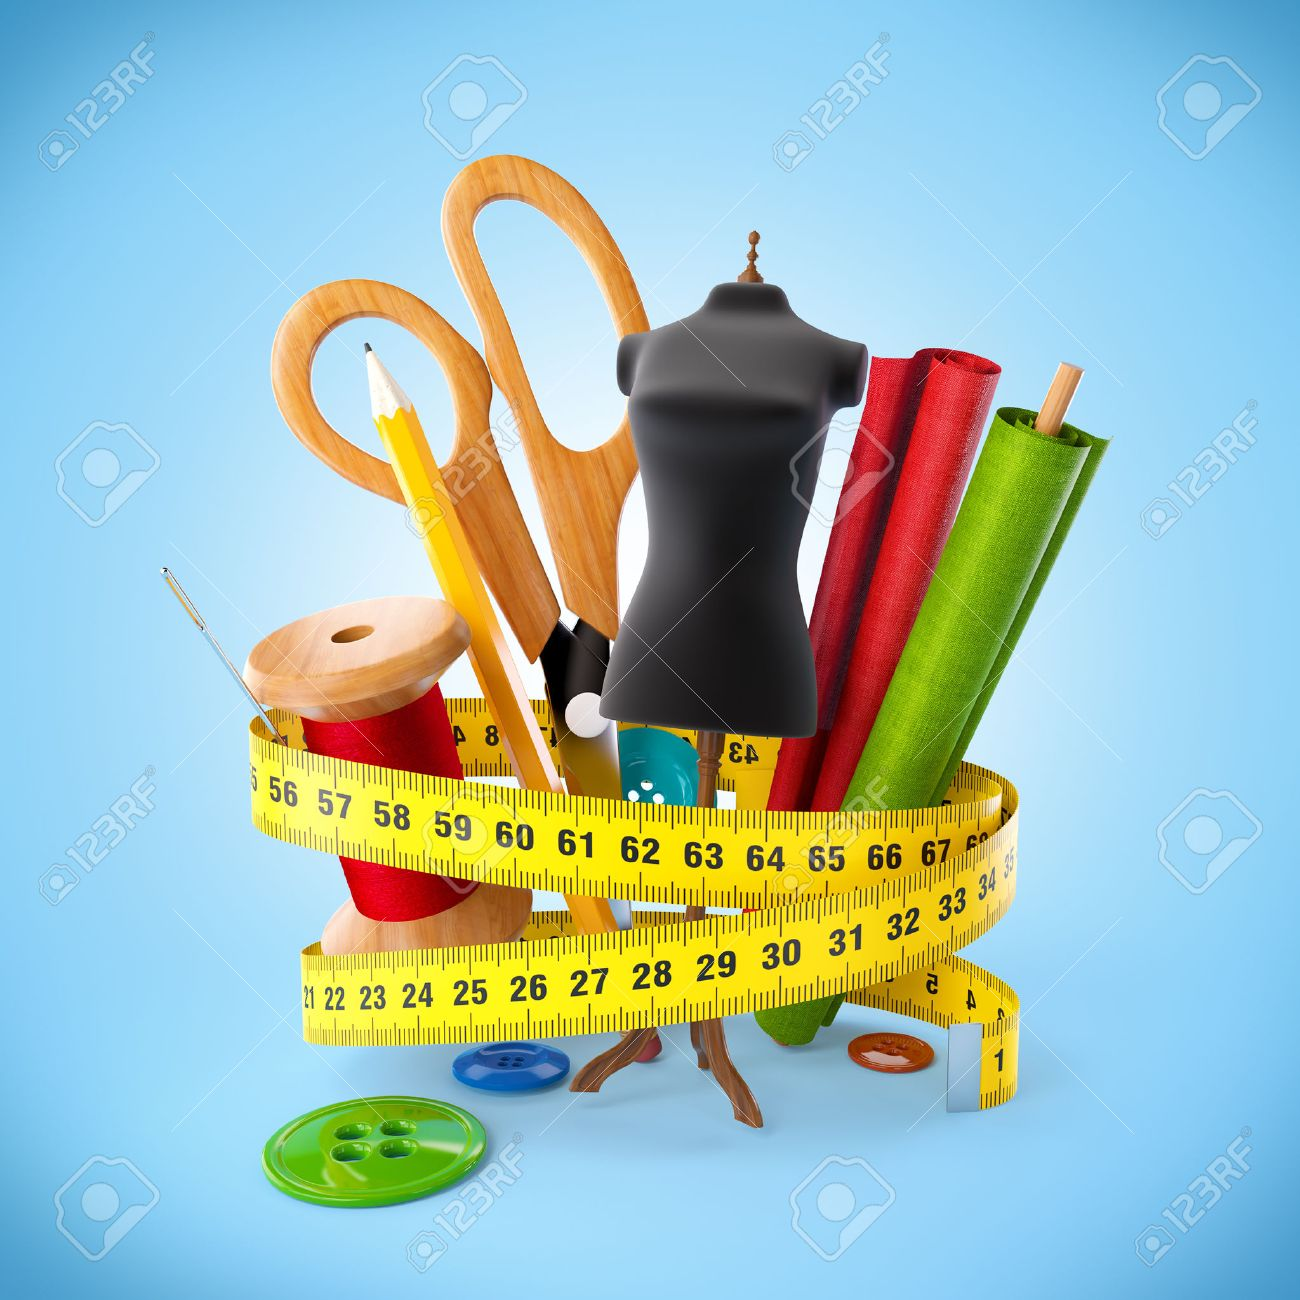 Sewing Tools At Blue Background Fashion Design Concept Stock Photo Picture And Royalty Free Image Image 26747321